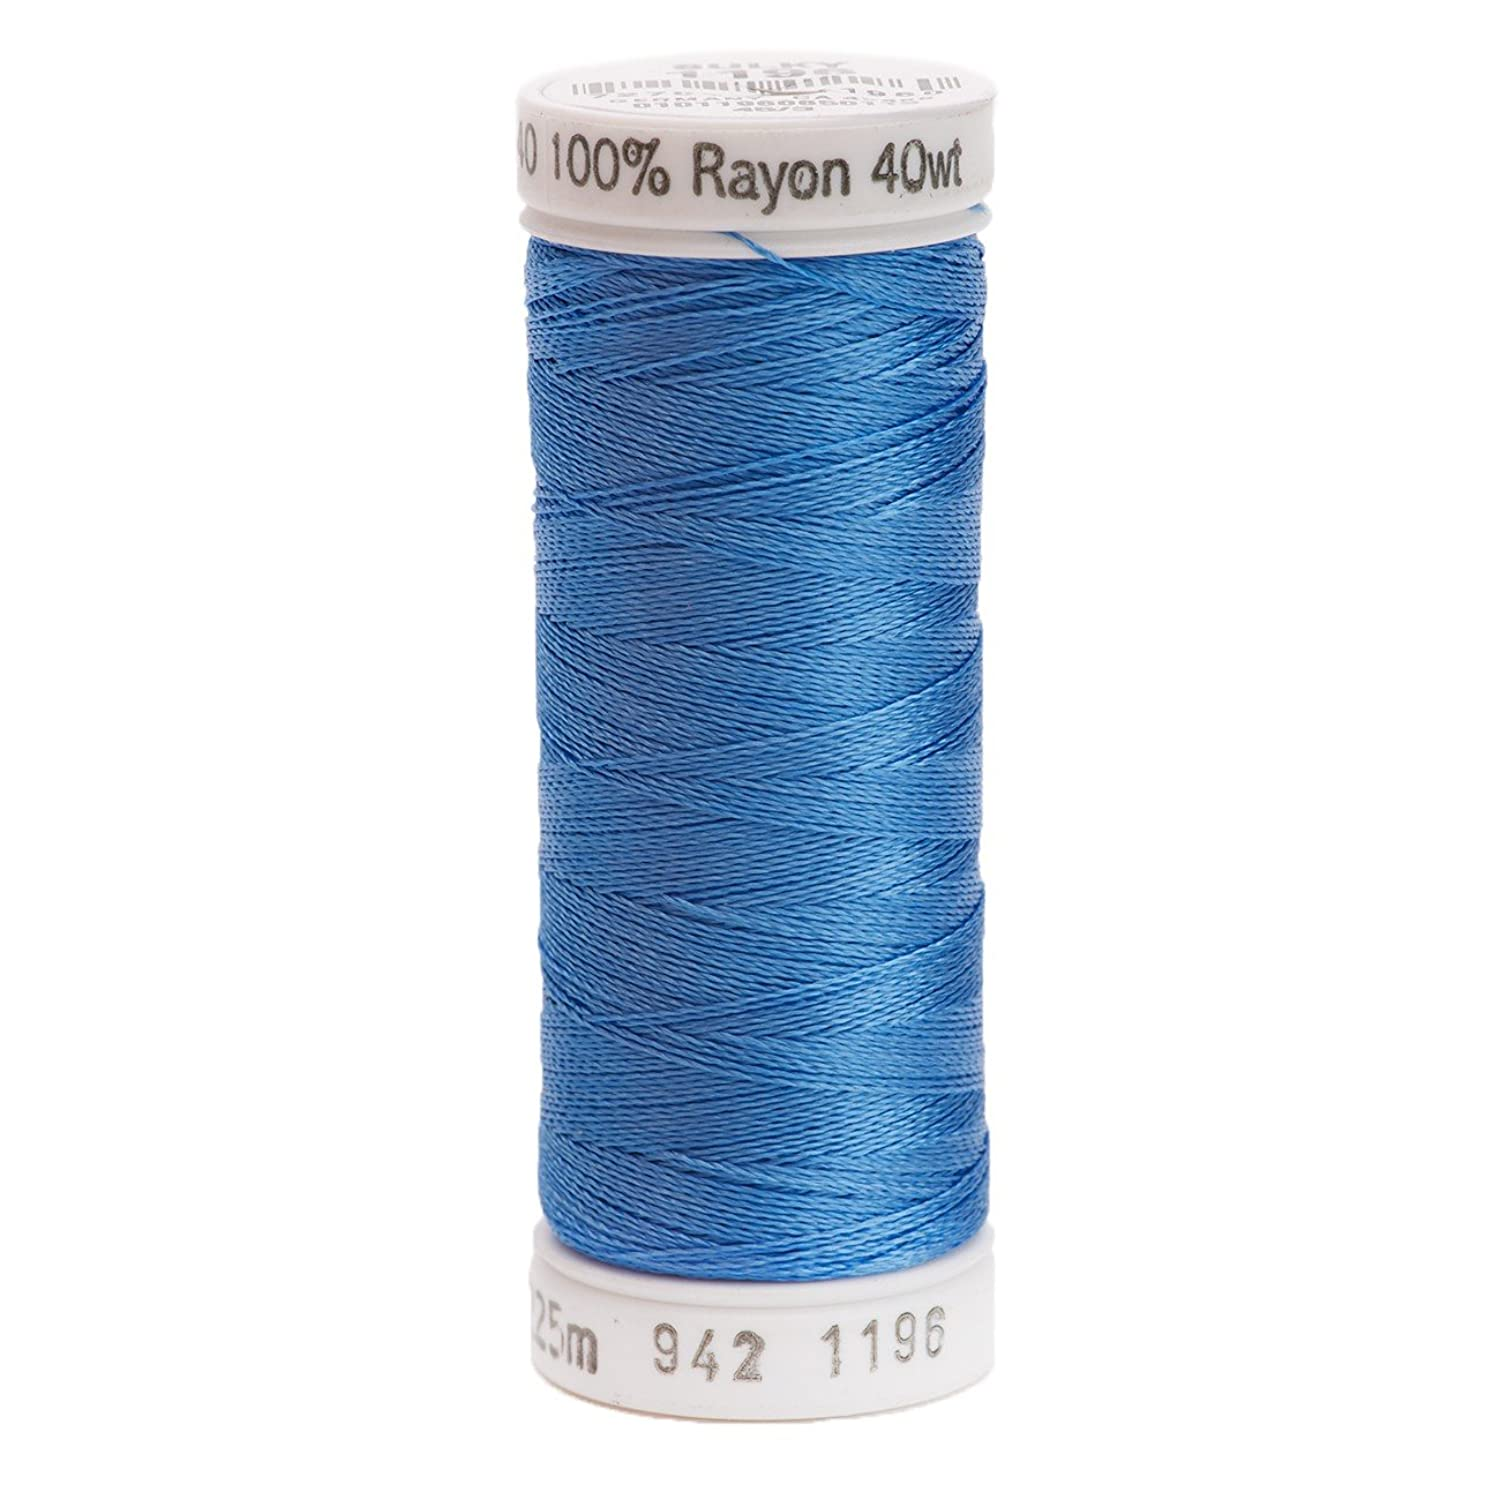 Sulky 942-1196 Rayon Thread for Sewing, 250-Yard, Blue